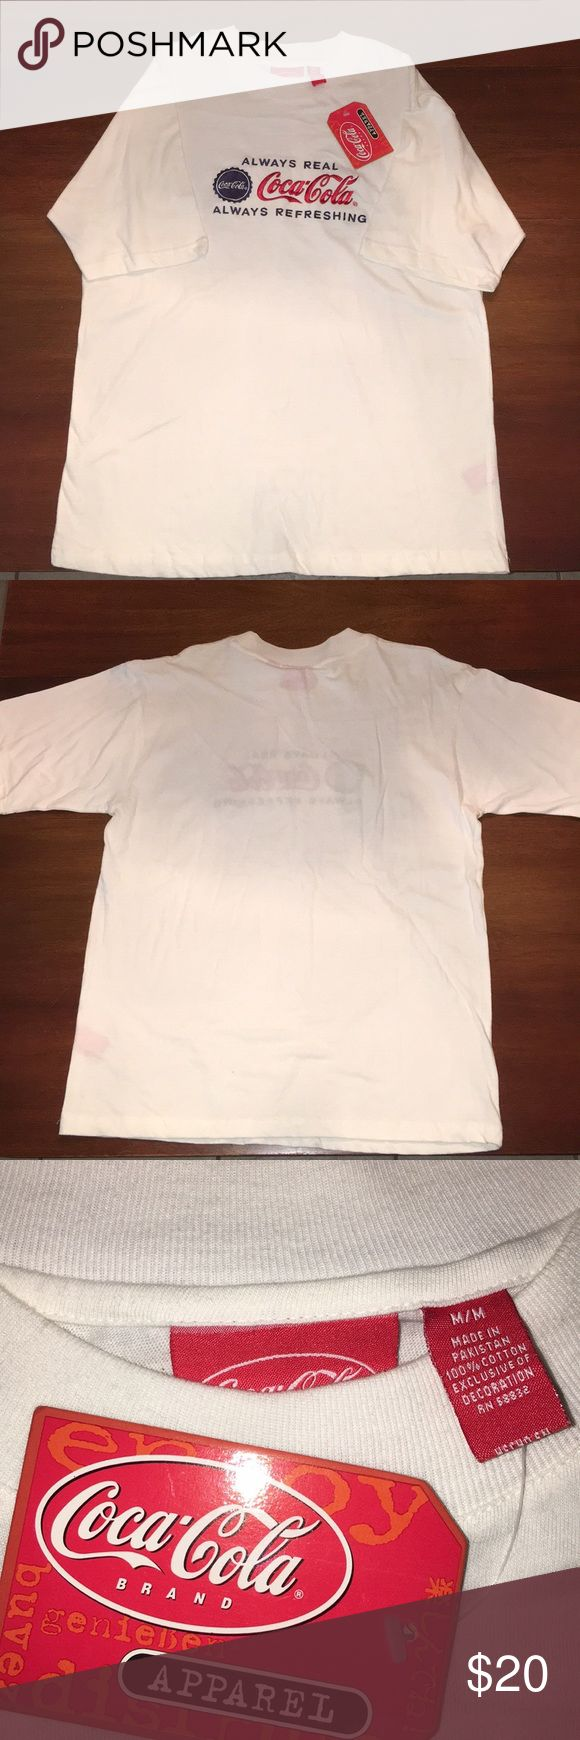 WHITE COCA COLA T-SHIRT This is a very cool Coca Cola T-shirt brand new with the tag still on it, I was gifted this shirt but I don't drink soda so I had no reason to wear it.   🤔CONDITION - EXCELLENT   🧐FLAWS - LITTLE TO NONE  🤓BRAND - COCA COLA   🛑DON'T LIKE THE PRICE ? SHOOT ME AN OFFER🛑   ⚠️Poshmark takes a cut out of every sale, no low balling on offers please⚠️ Coca Cola Shirts Tees - Long Sleeve